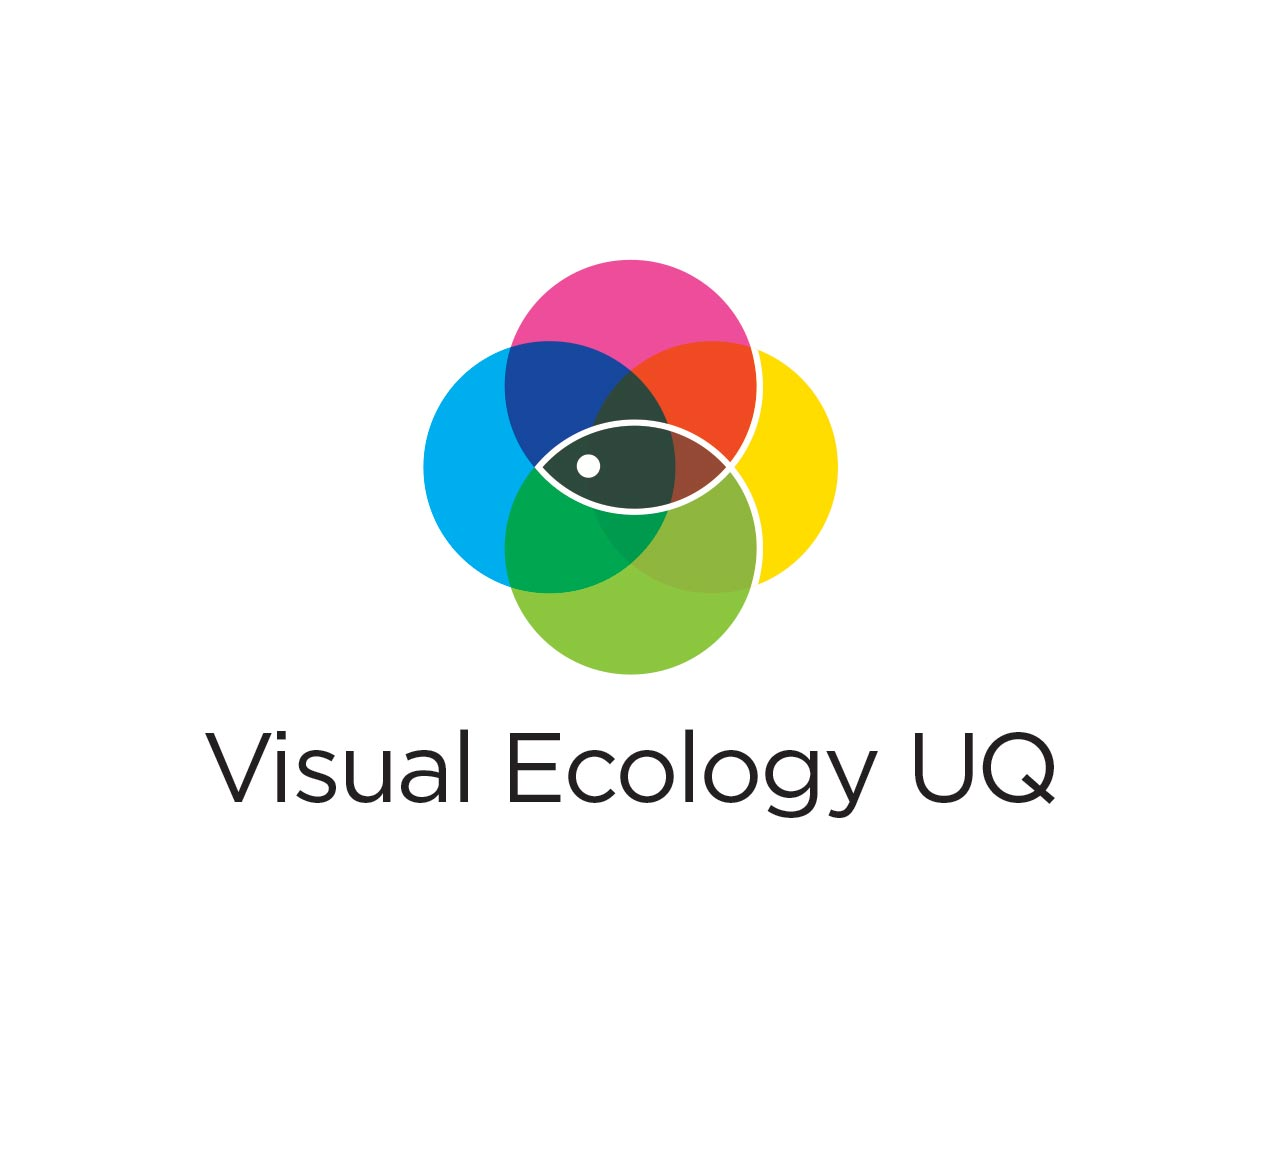 Visual Ecology UQ